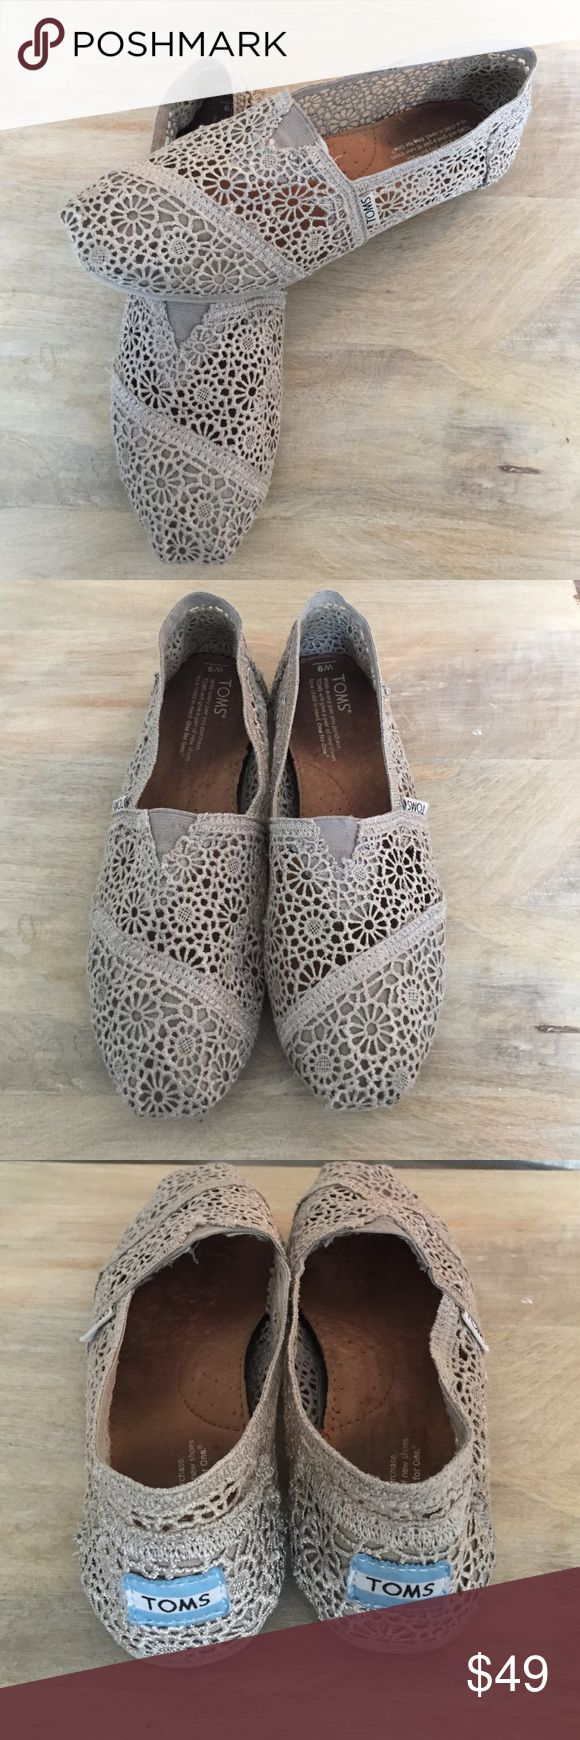 Toms Classic Silver Moroccan Crochet Toms Classic Silver Moroco Crochet. Beautiful grey sliver colored lace crocheted Toms. Great condition! Barely worn. Comes with original box, sticker and flag. No trades! Offers are welcome :) TOMS Shoes